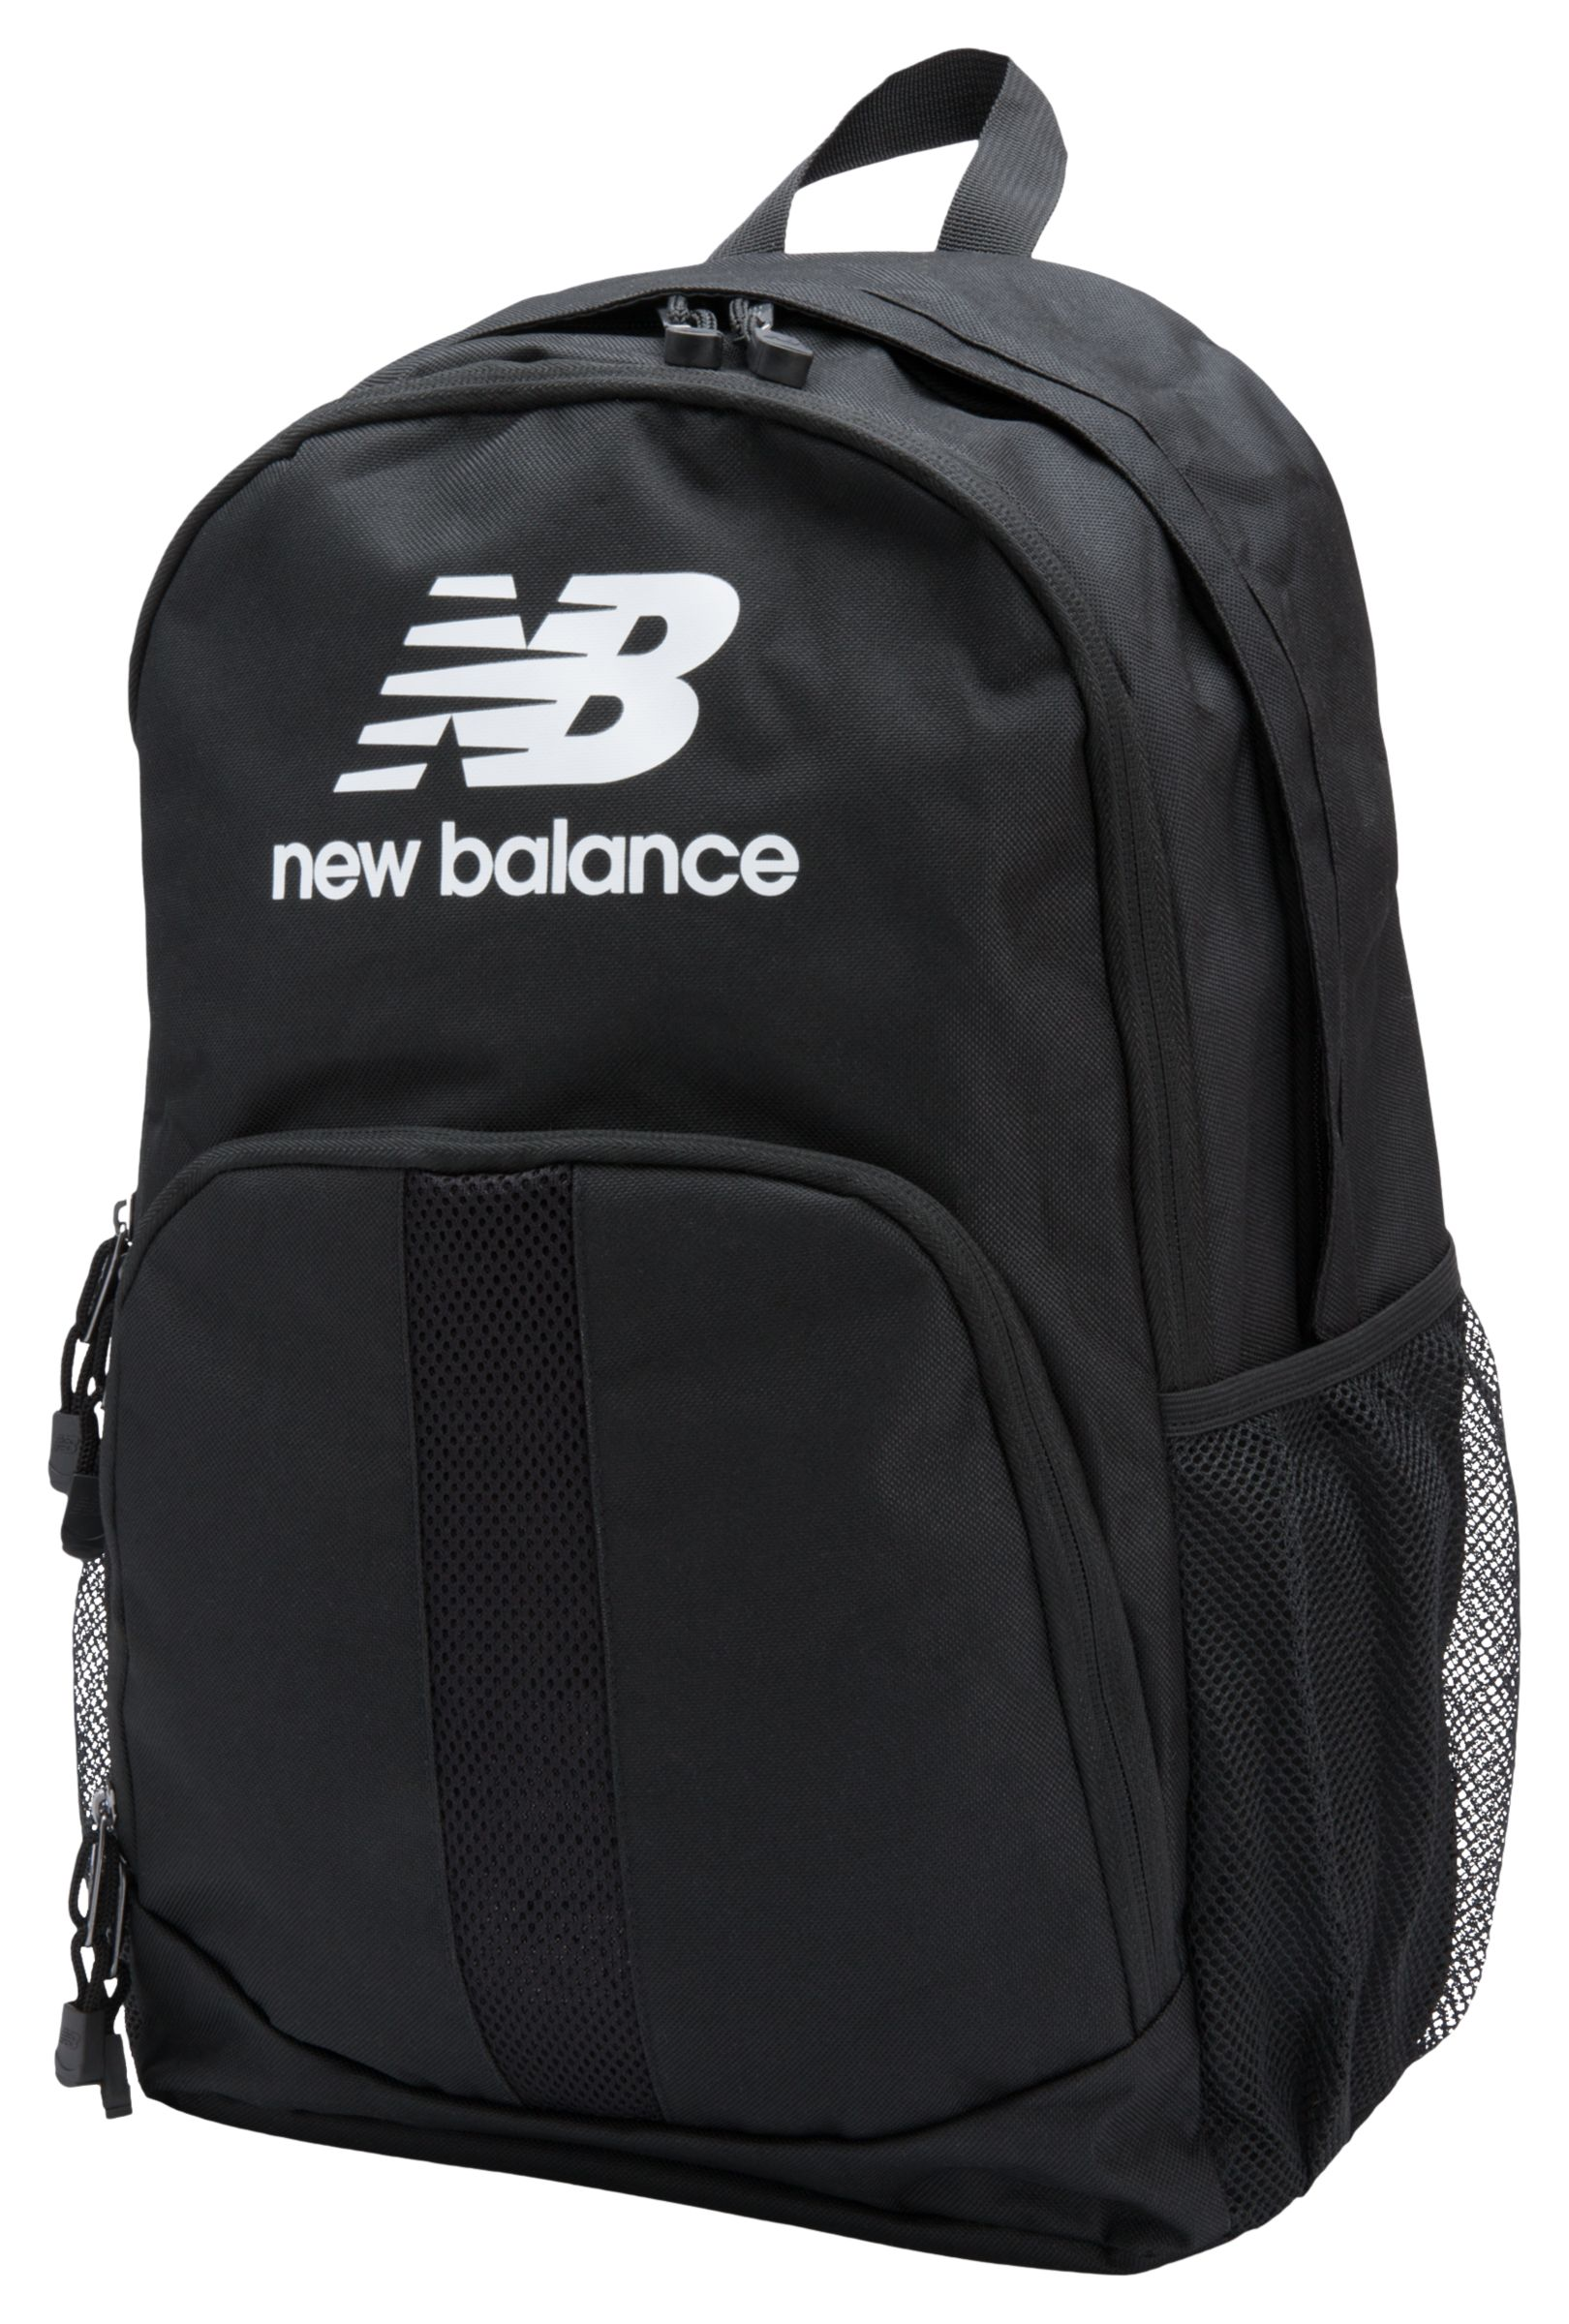 NB Solaris Backpack, Black with White